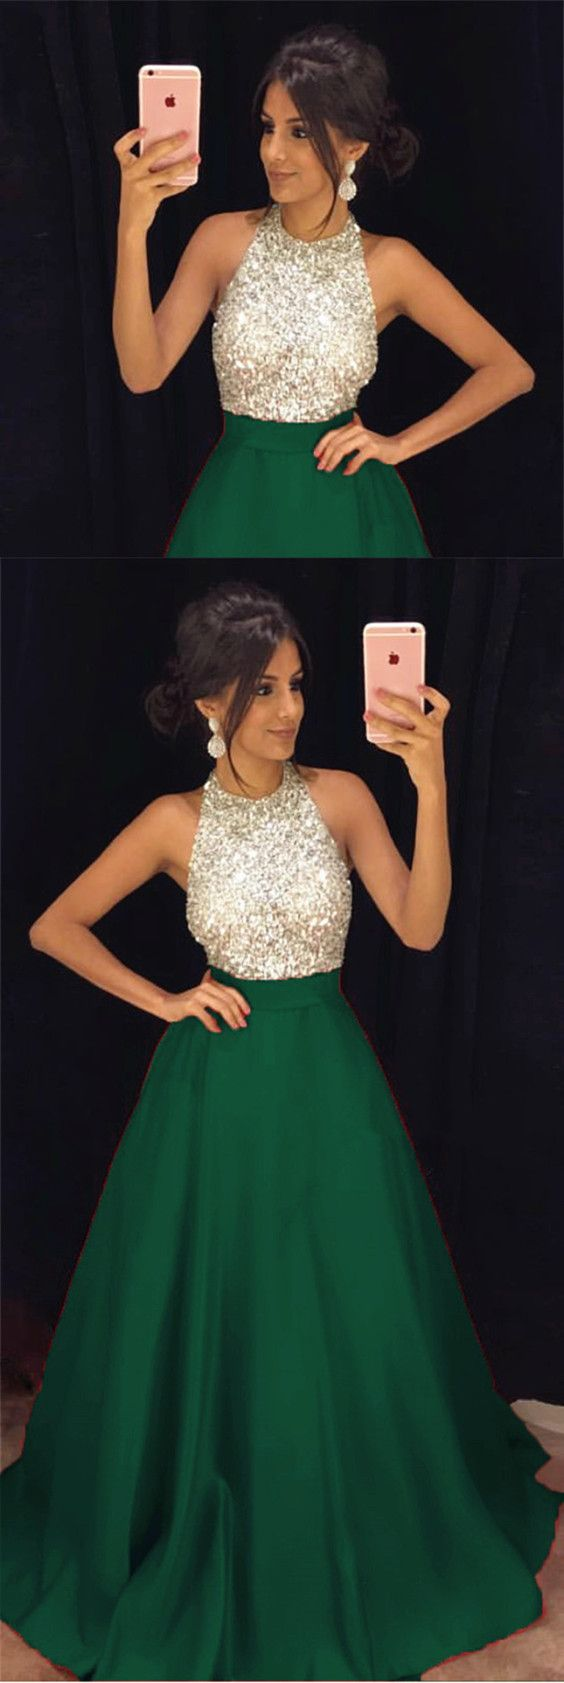 Emerald green prom dress 2018   best prom images on Pinterest  Nail scissors Cute nails and